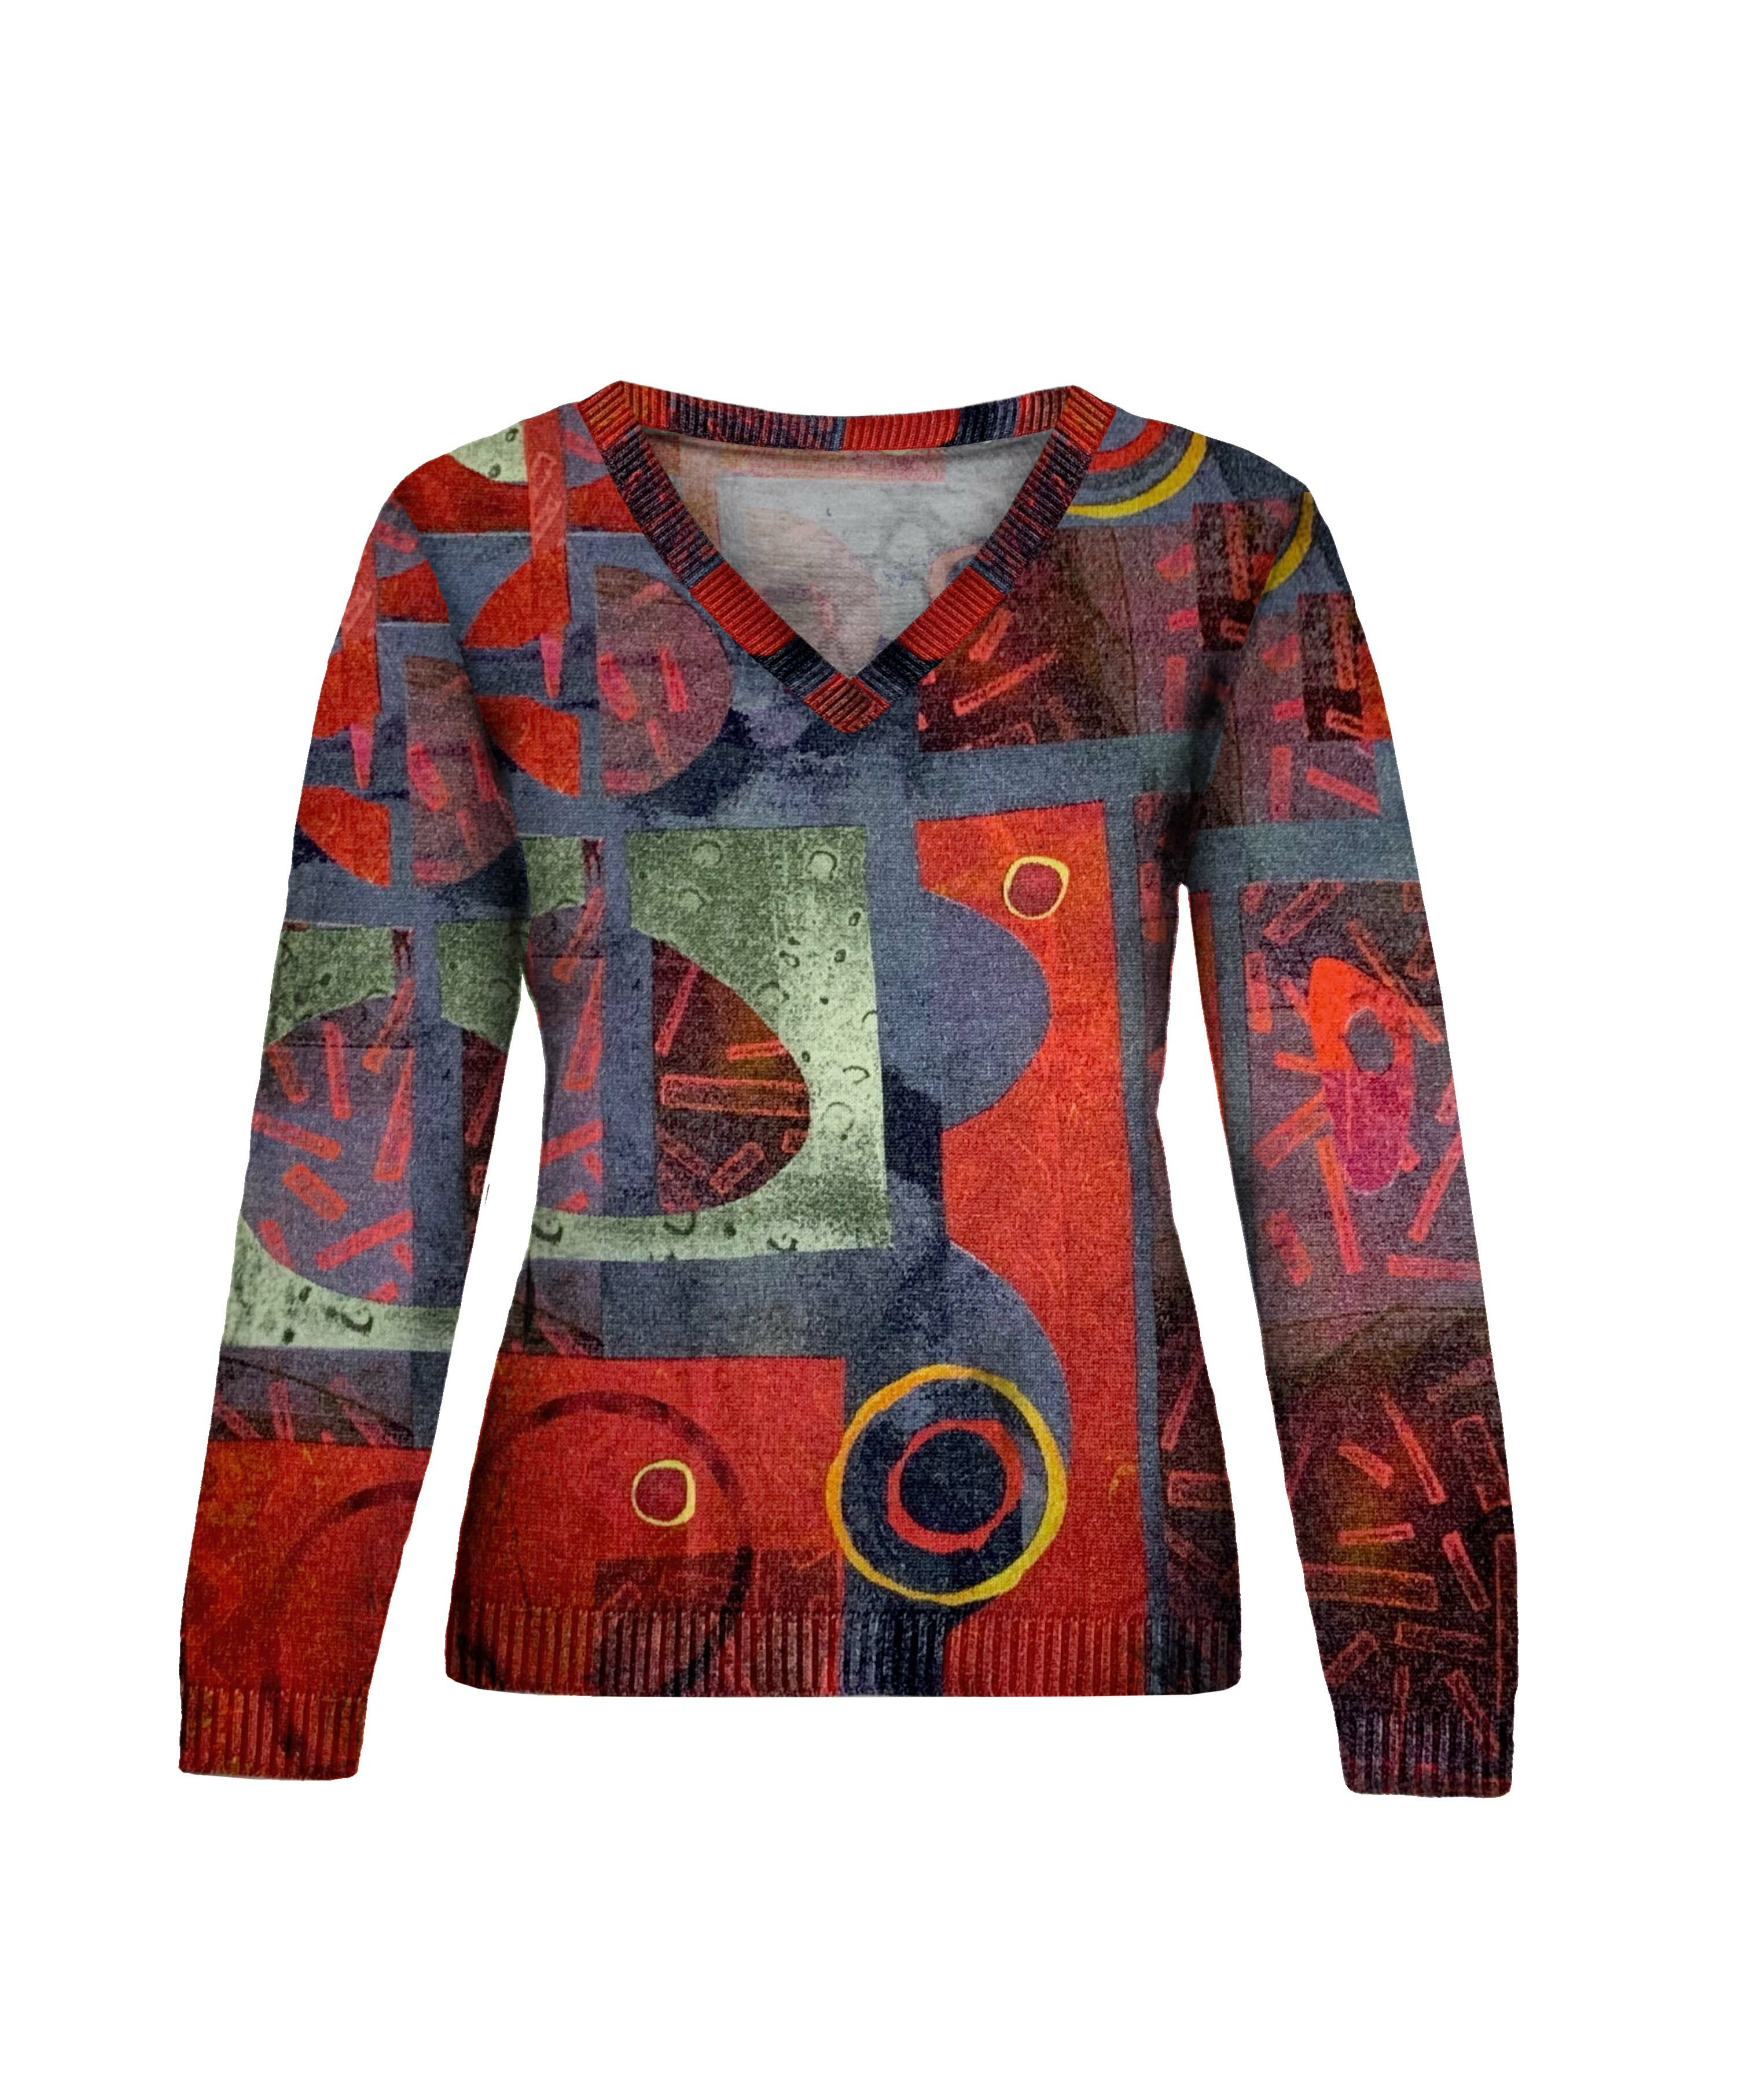 Simply Art Dolcezza: Expression of Color Yellow Dot Abstract Art Sweater SOLD OUT Dolcezza_Simply Art_59127_N